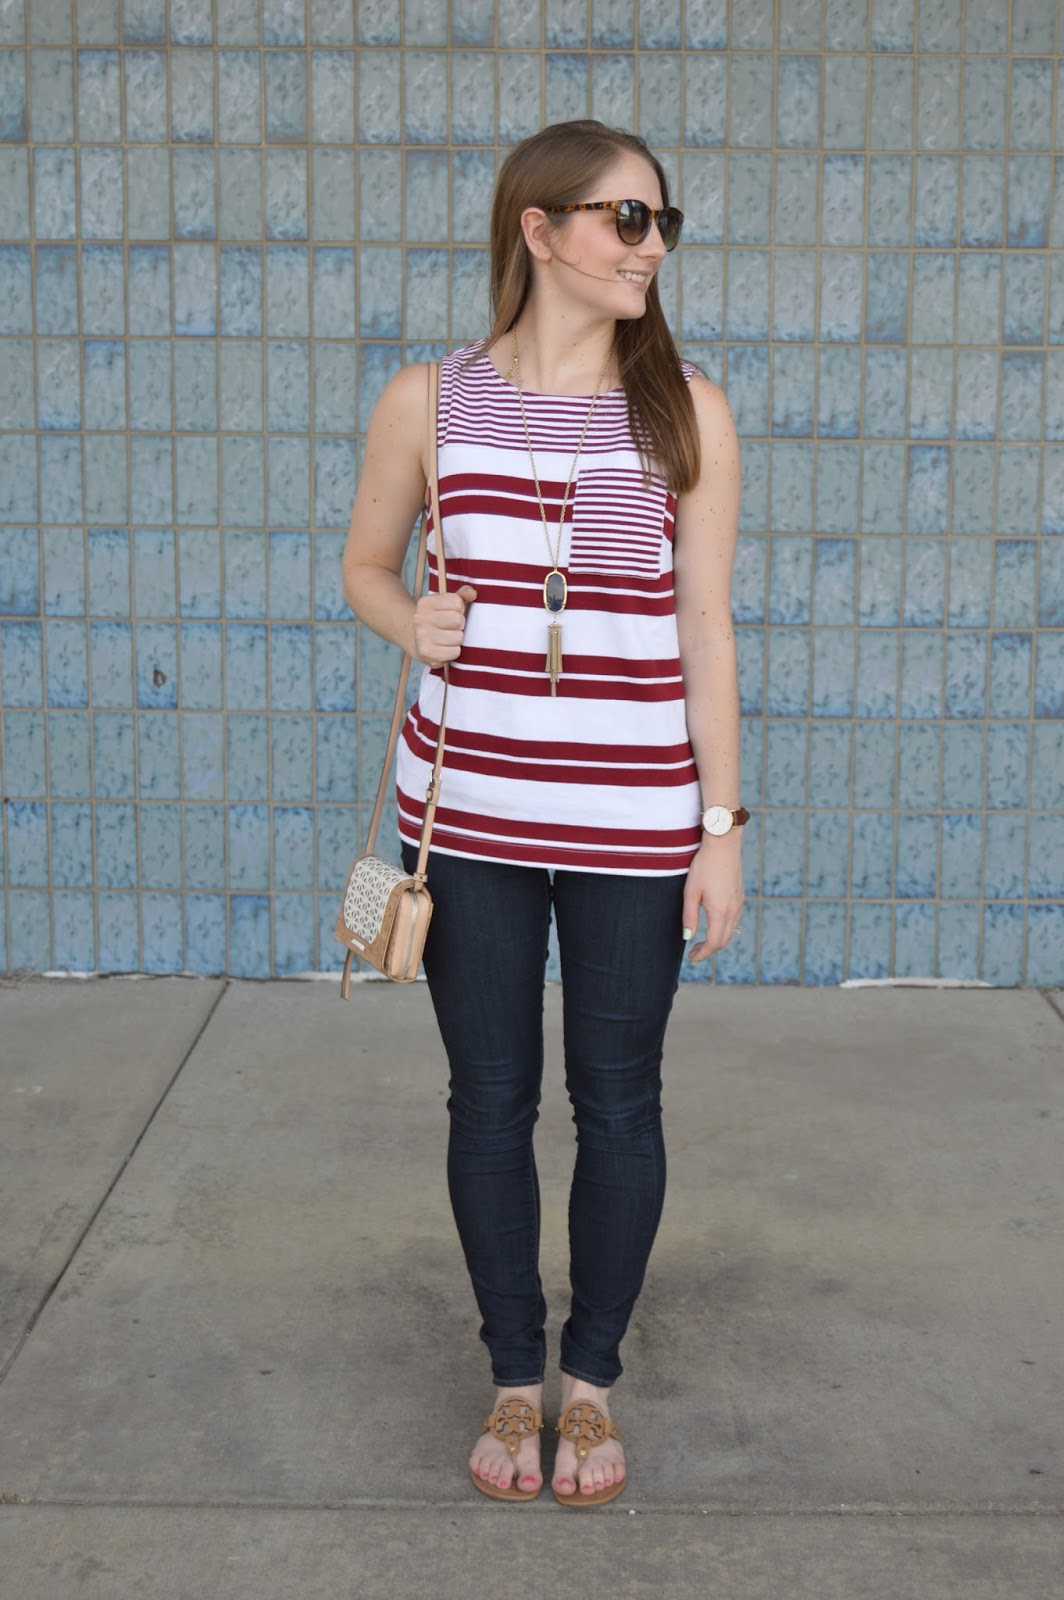 summer outfit ideas |  what to wear this summer | tory burch miller sandals | summer lookbook | summer style | fourth of july outfit ideas | what to wear this labor day | patriotic outfit ideas | a memory of us